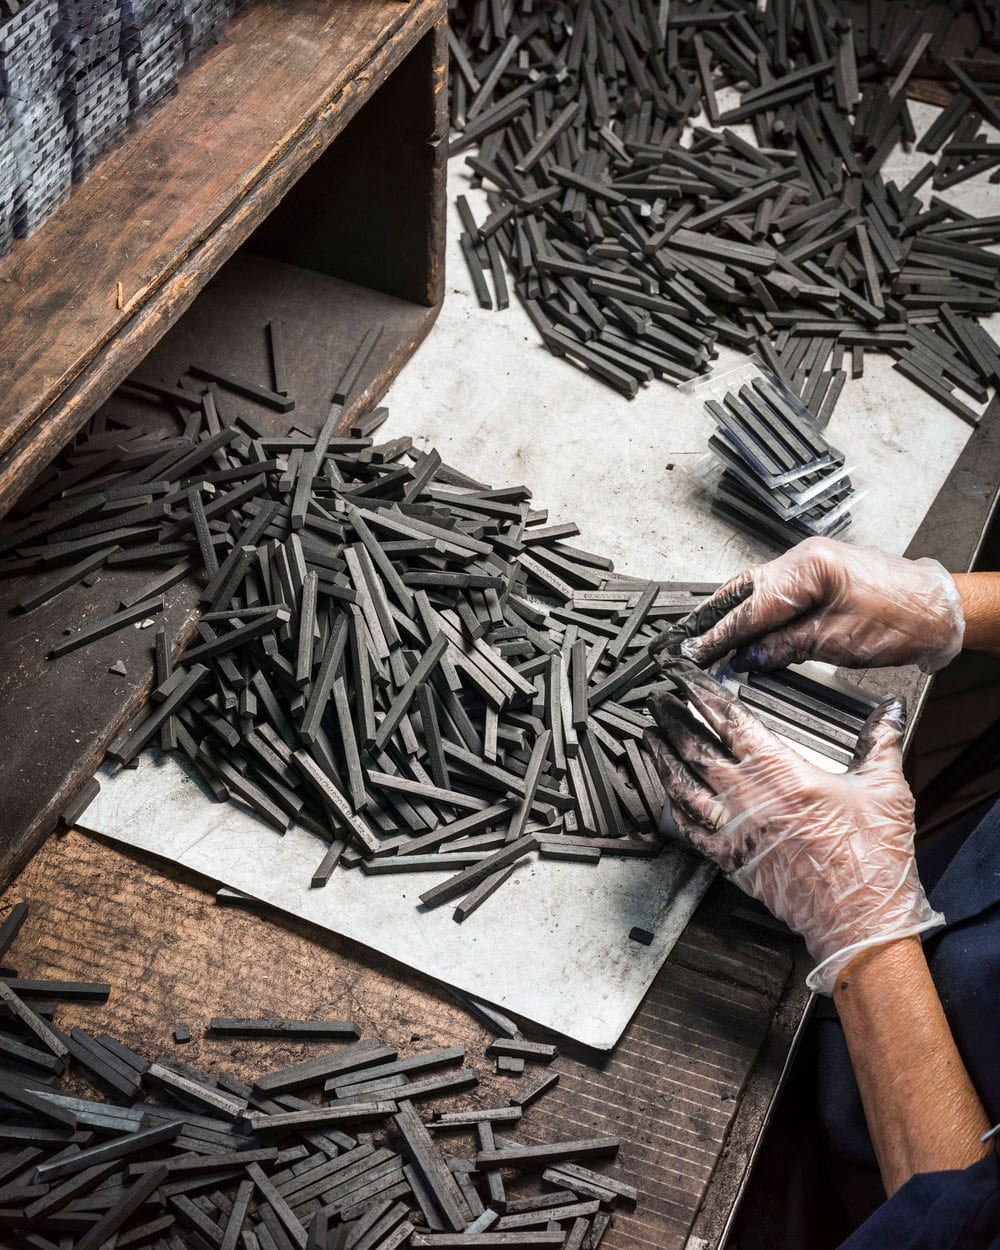 Christopher Payne Photographs the Production Line of One of America's Last Pencil Factories | Yellowtrace